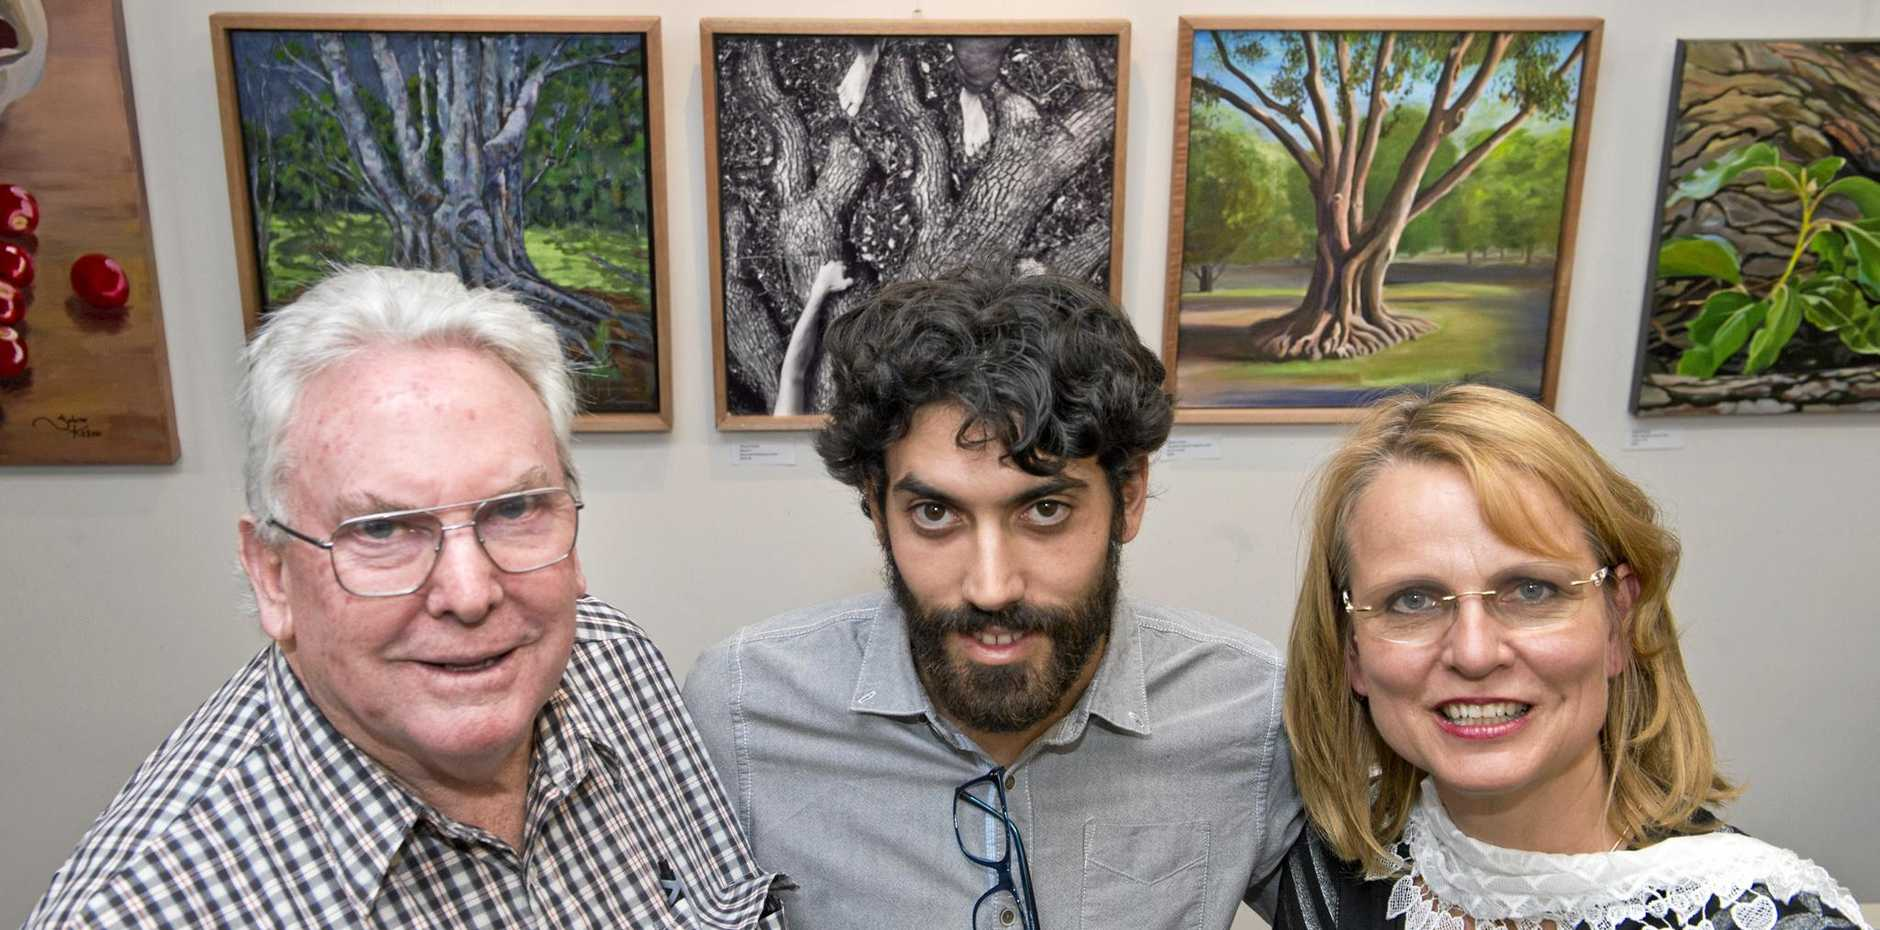 ( From left ) Peter Fitzpatrick, Vincent Parisi and Sabine Kehoe  at Toowoomba Art Society's exhibition